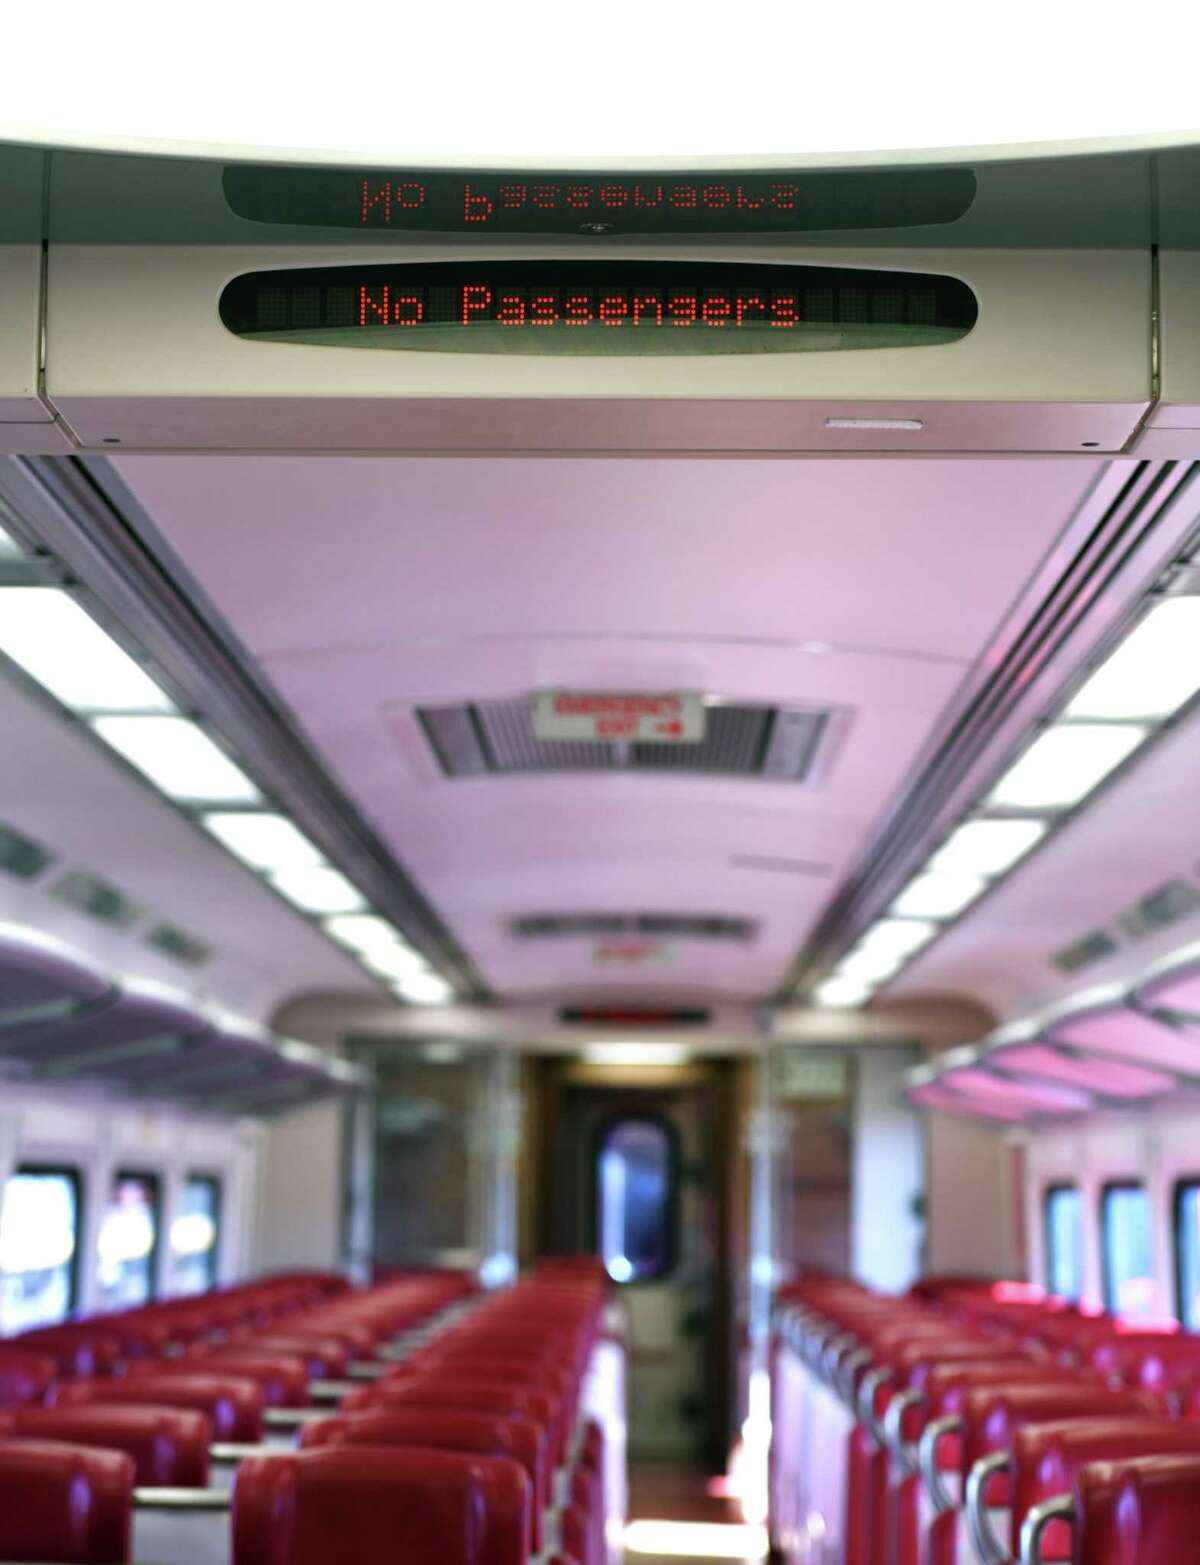 A Metro-North train car is nearly empty on the route between Greenwich and Stamford on Tuesday, March 24, 2020. Since the coronavirus outbreak, Metro-North has seen a sharp decrease in train commuters.